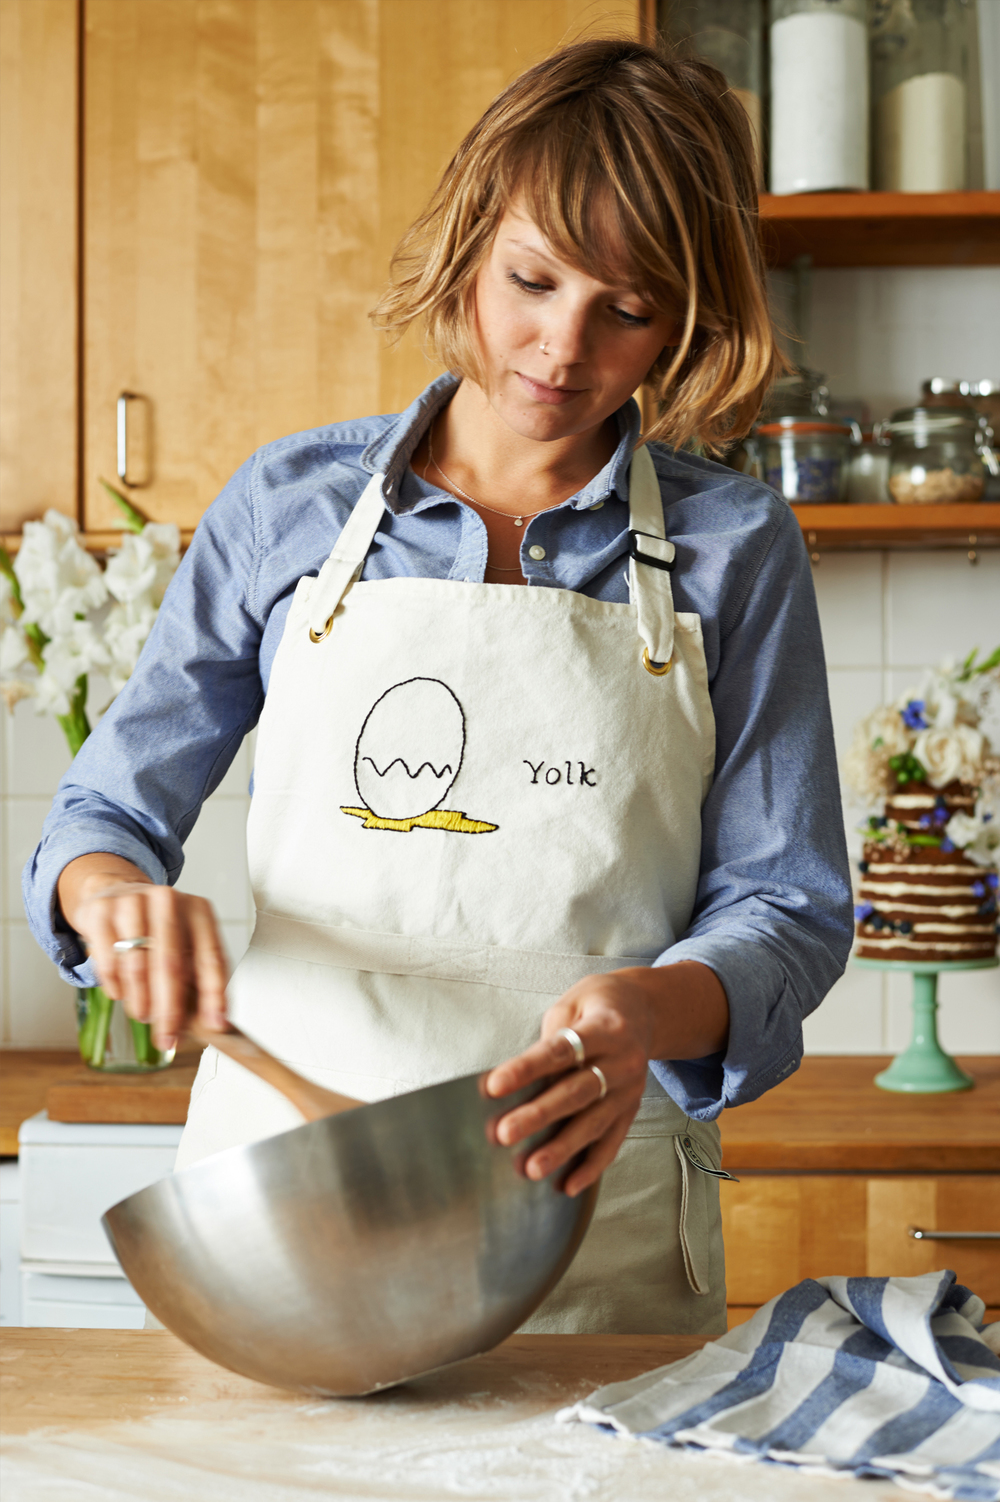 lifestyle photography of a woman baking cakes